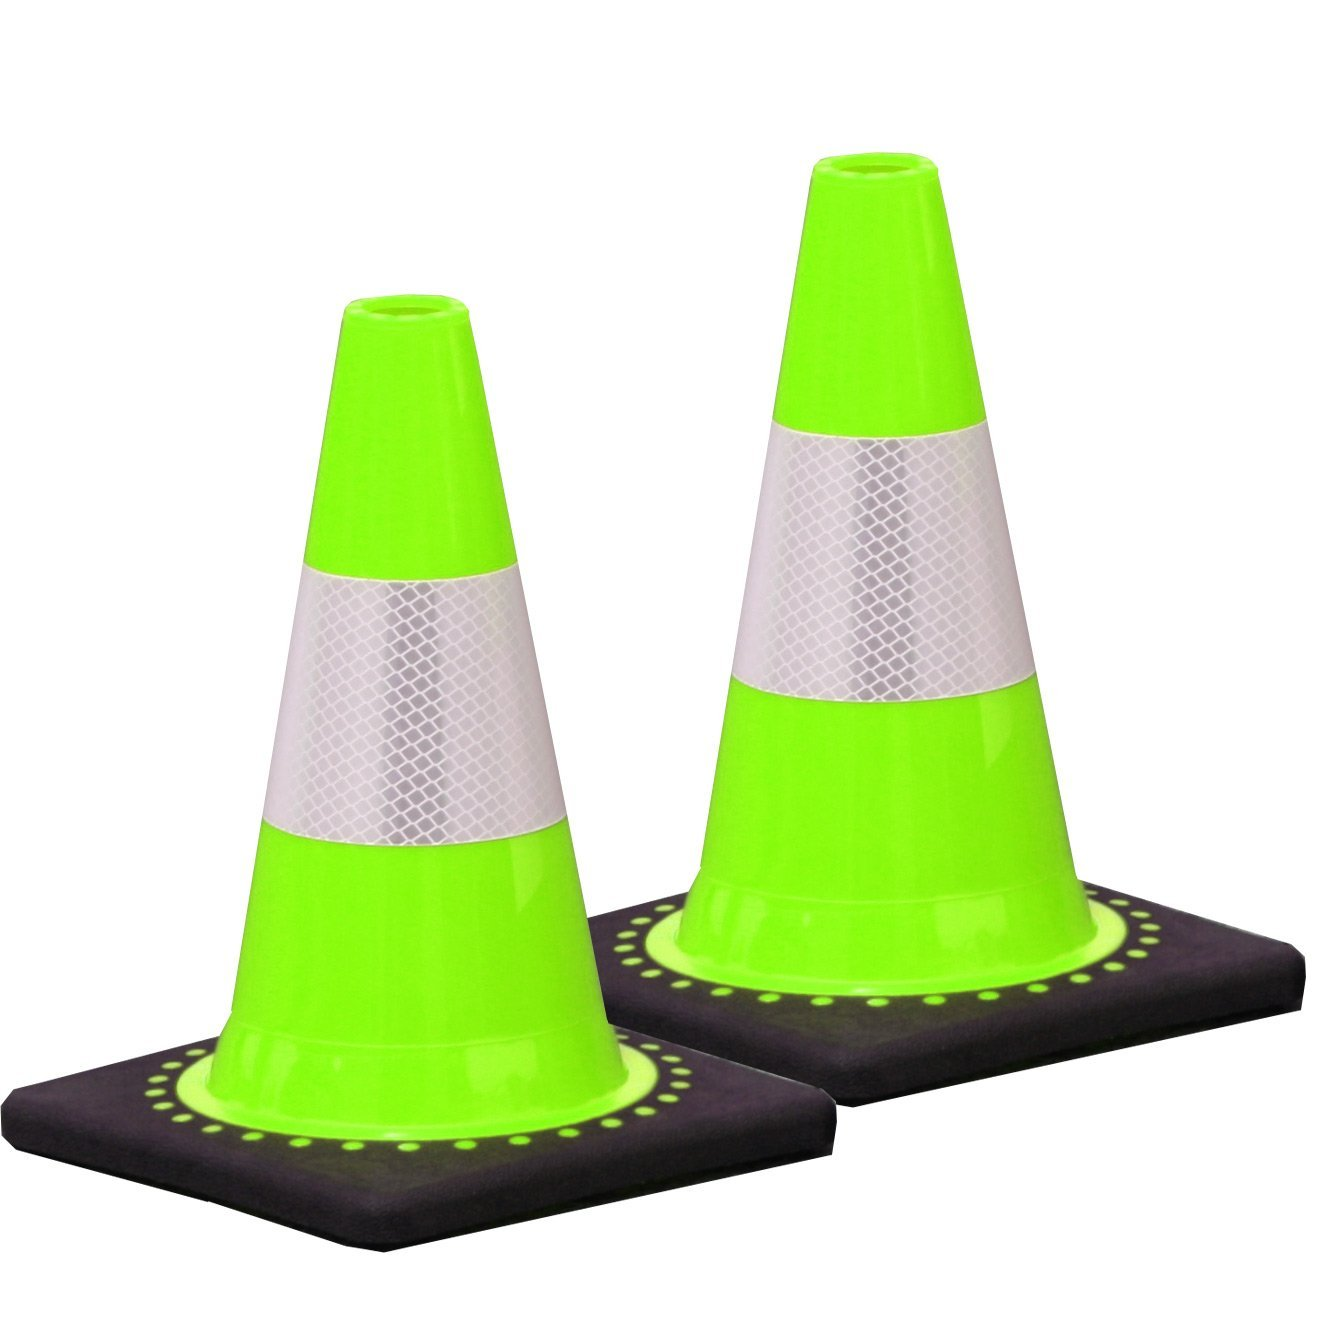 2 Pieces UVV® Reflective Mint Green 30 cm with Reflective Foil Stripes Type RA2/B – Traffic Cone – Warning Cone Stackable ES-Team Consult GmbH